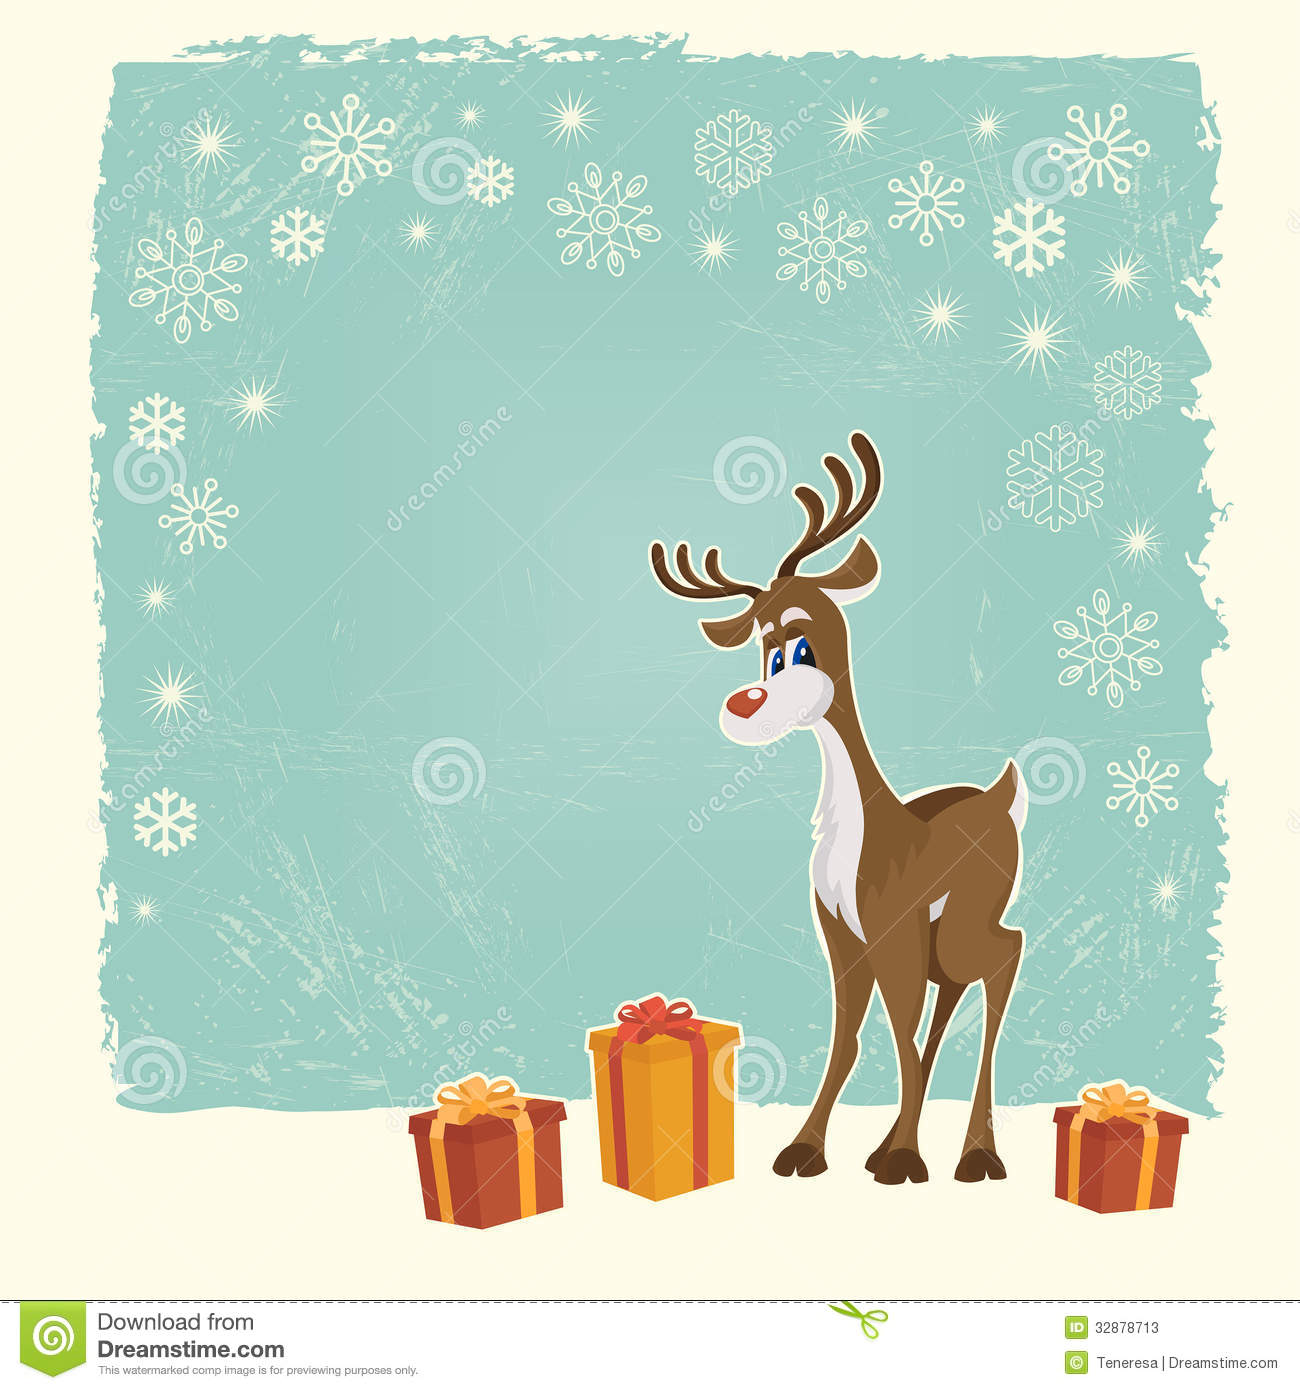 Retro Christmas Card With Reindeer Stock Vector - Illustration of ...